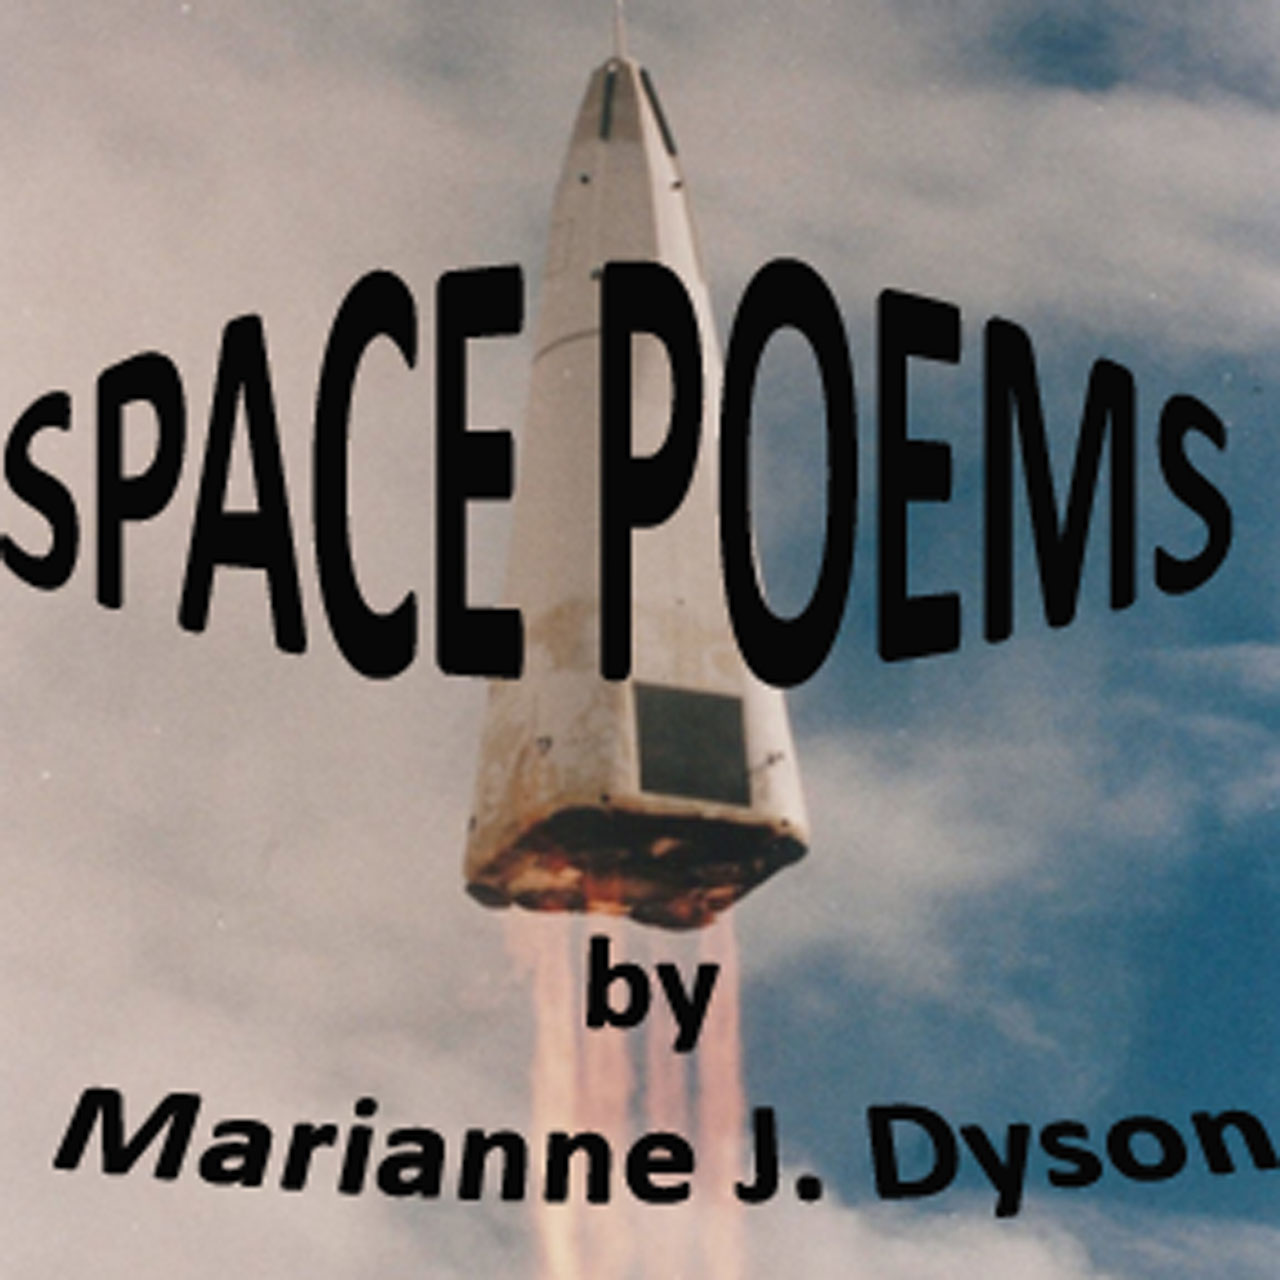 Space Poems Cover showing launch of Delta Clipper rocket.